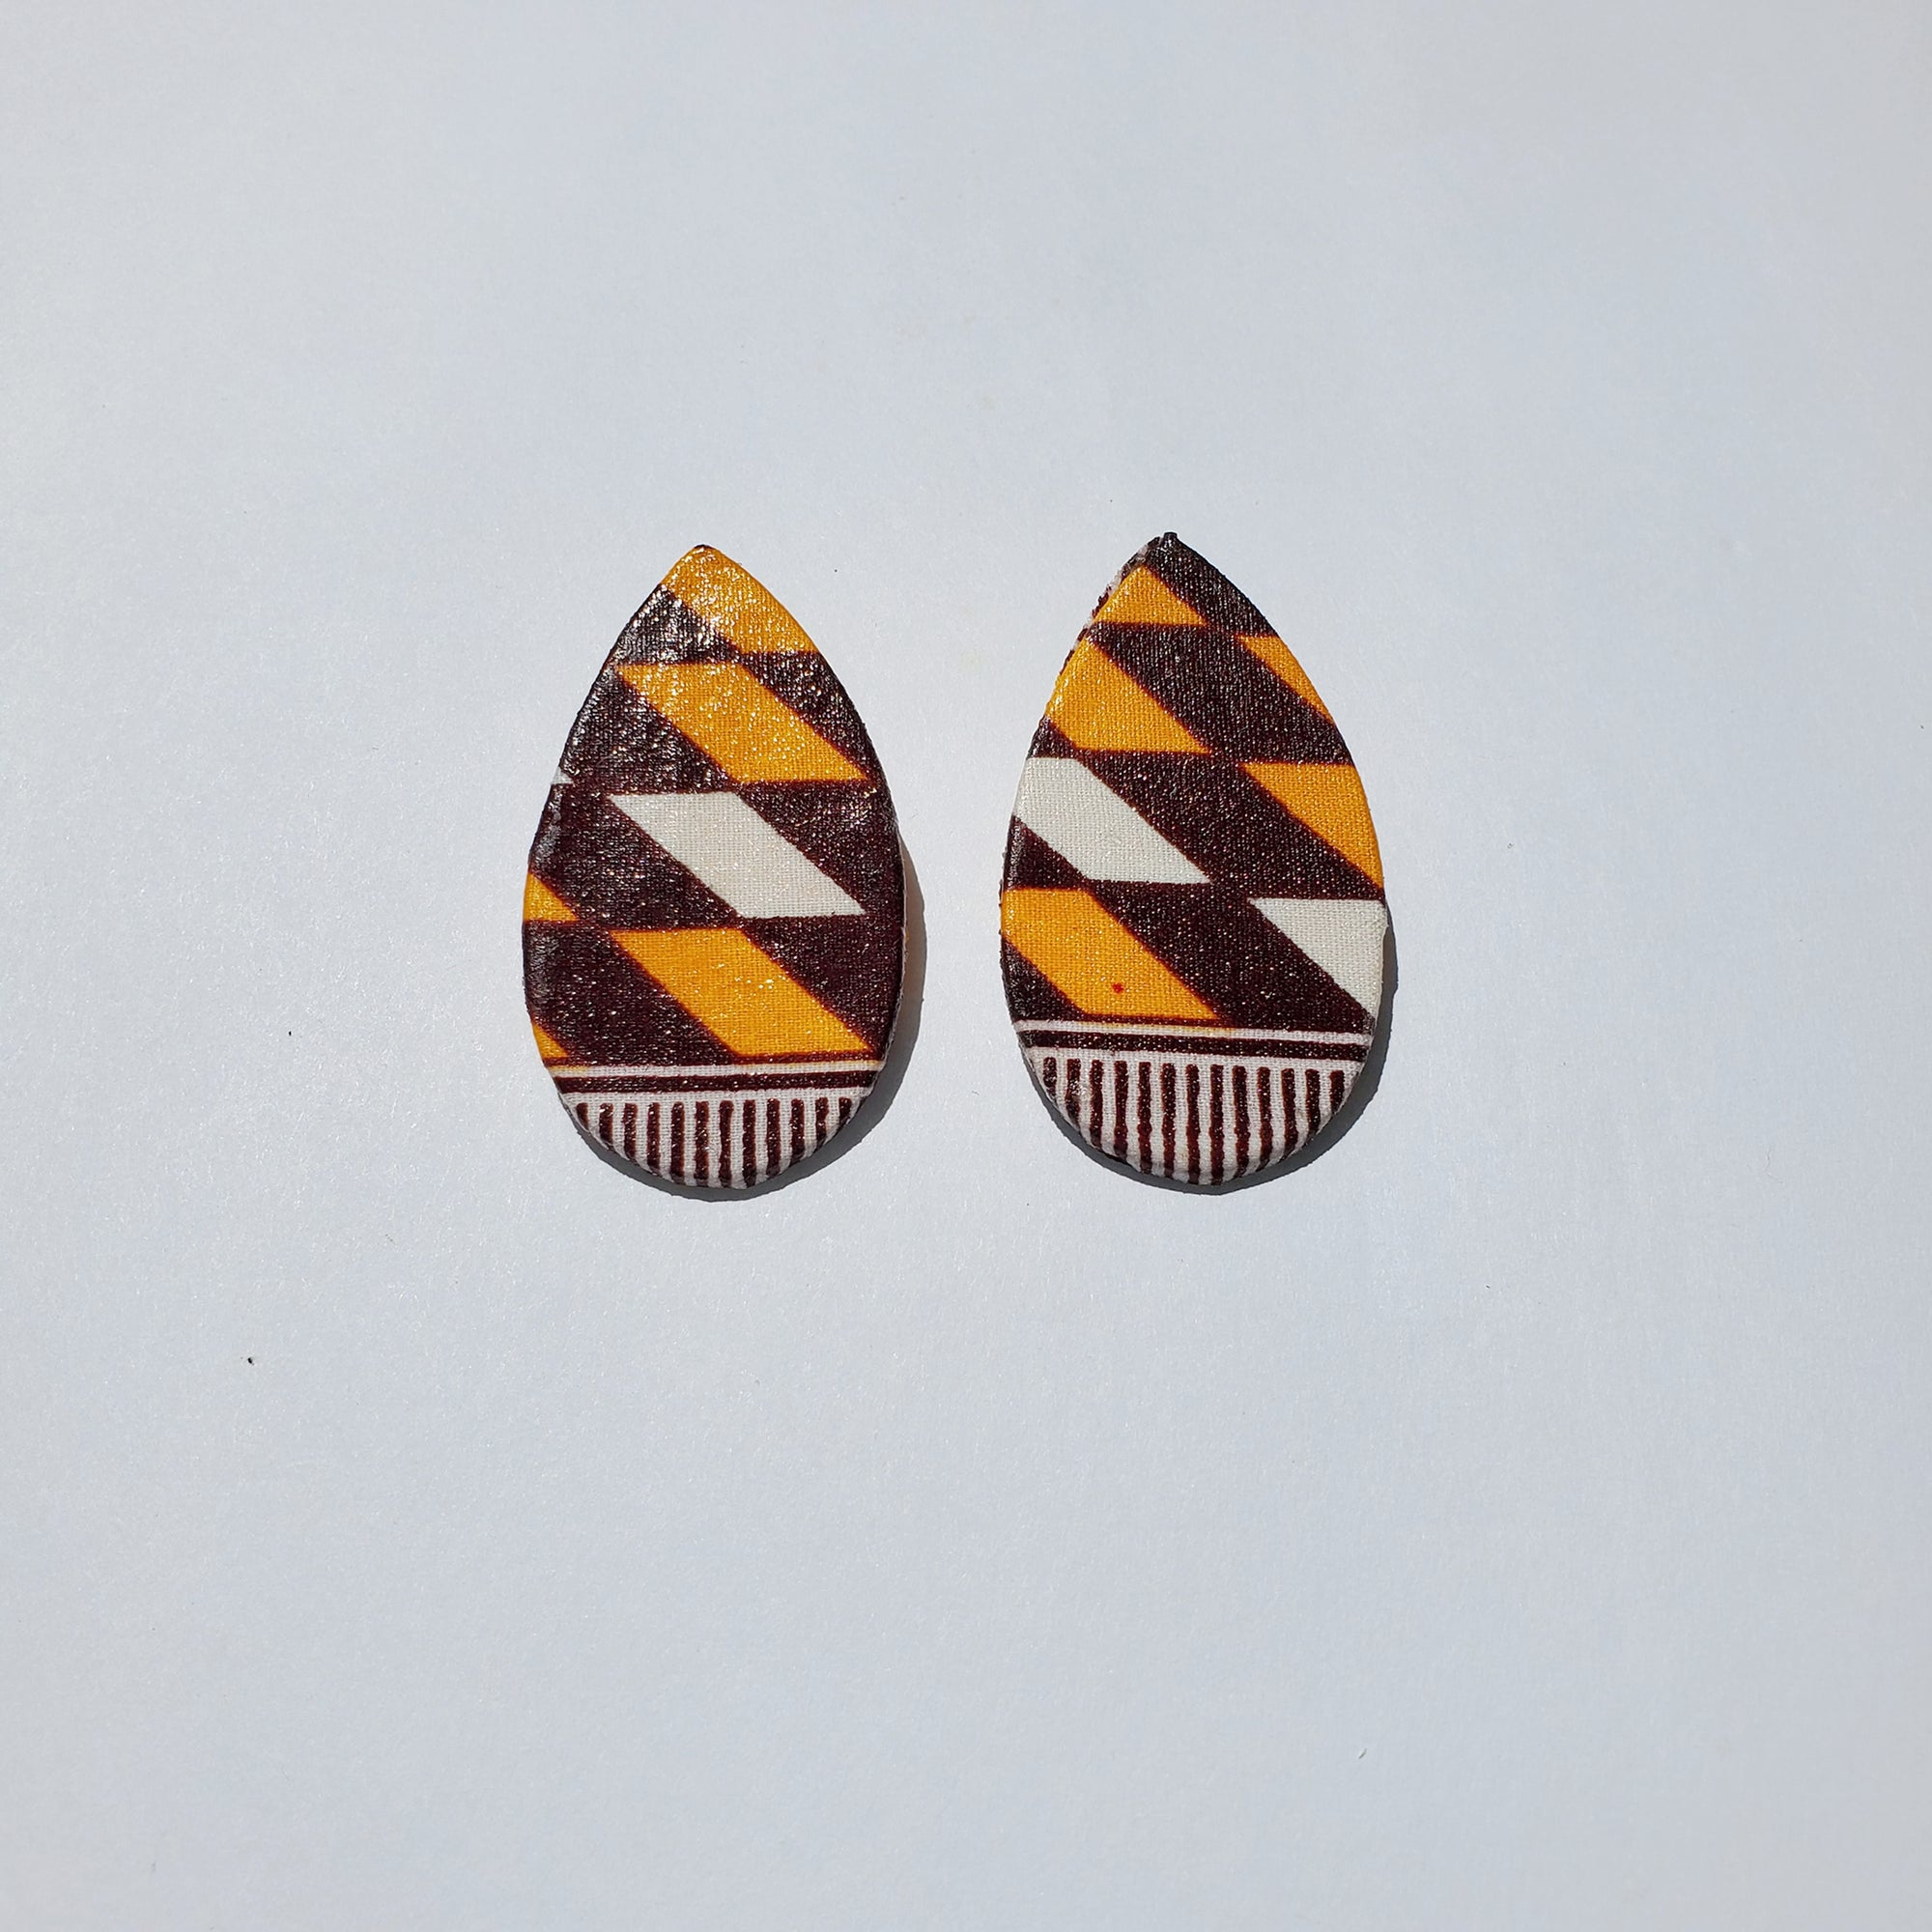 African/ Ankara Tear Drop Earrings(studded) - Brown/Orange /White Geometric Print